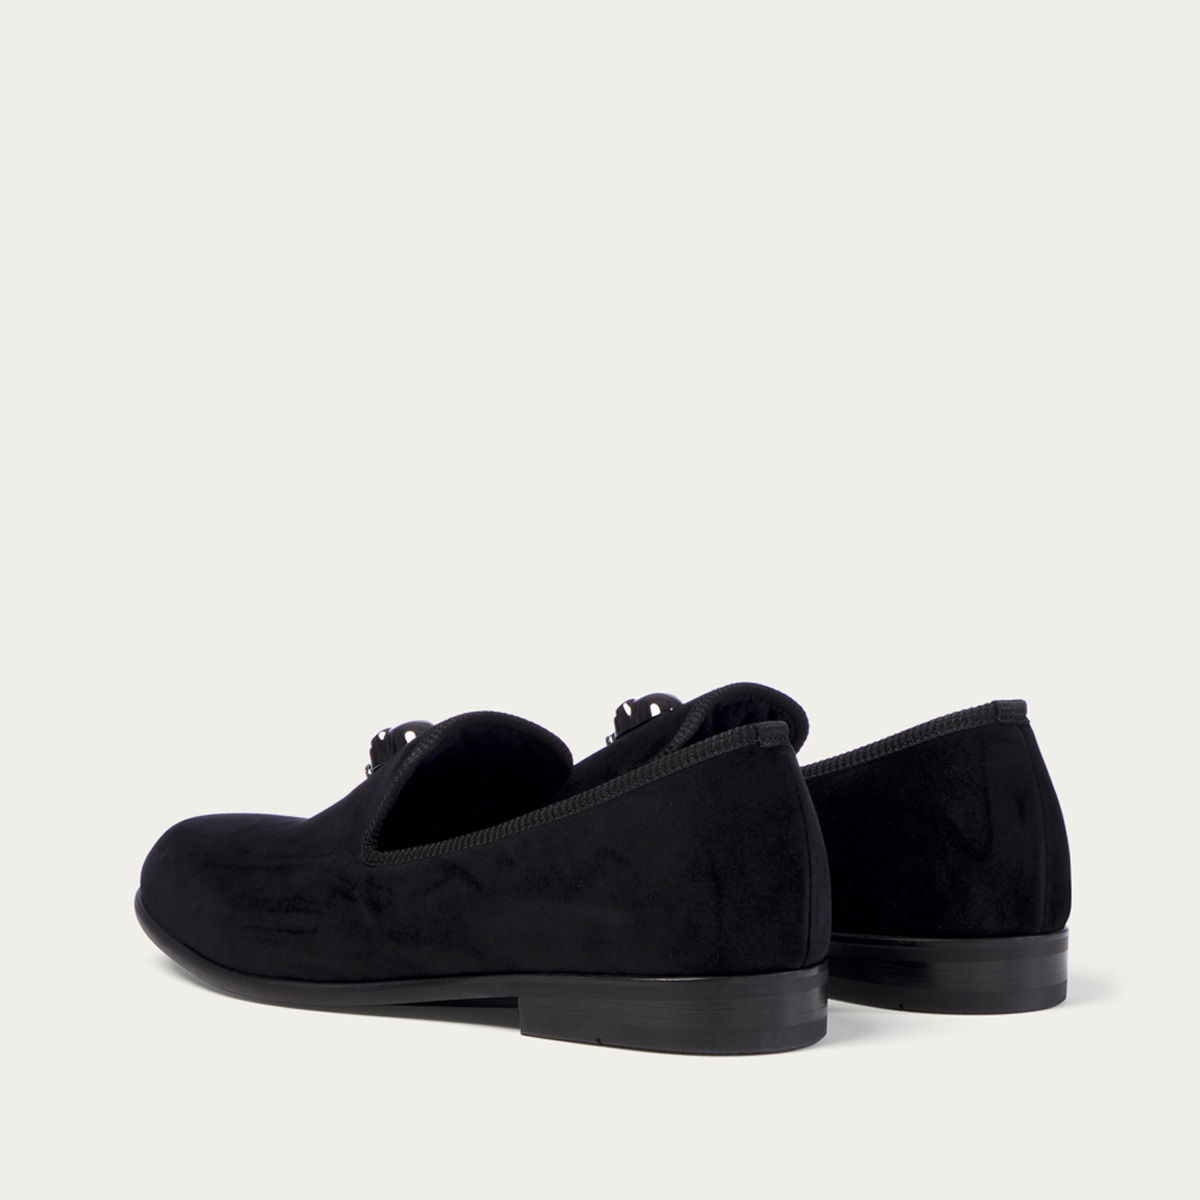 Skulled Black Duke Loafer | Bombinate